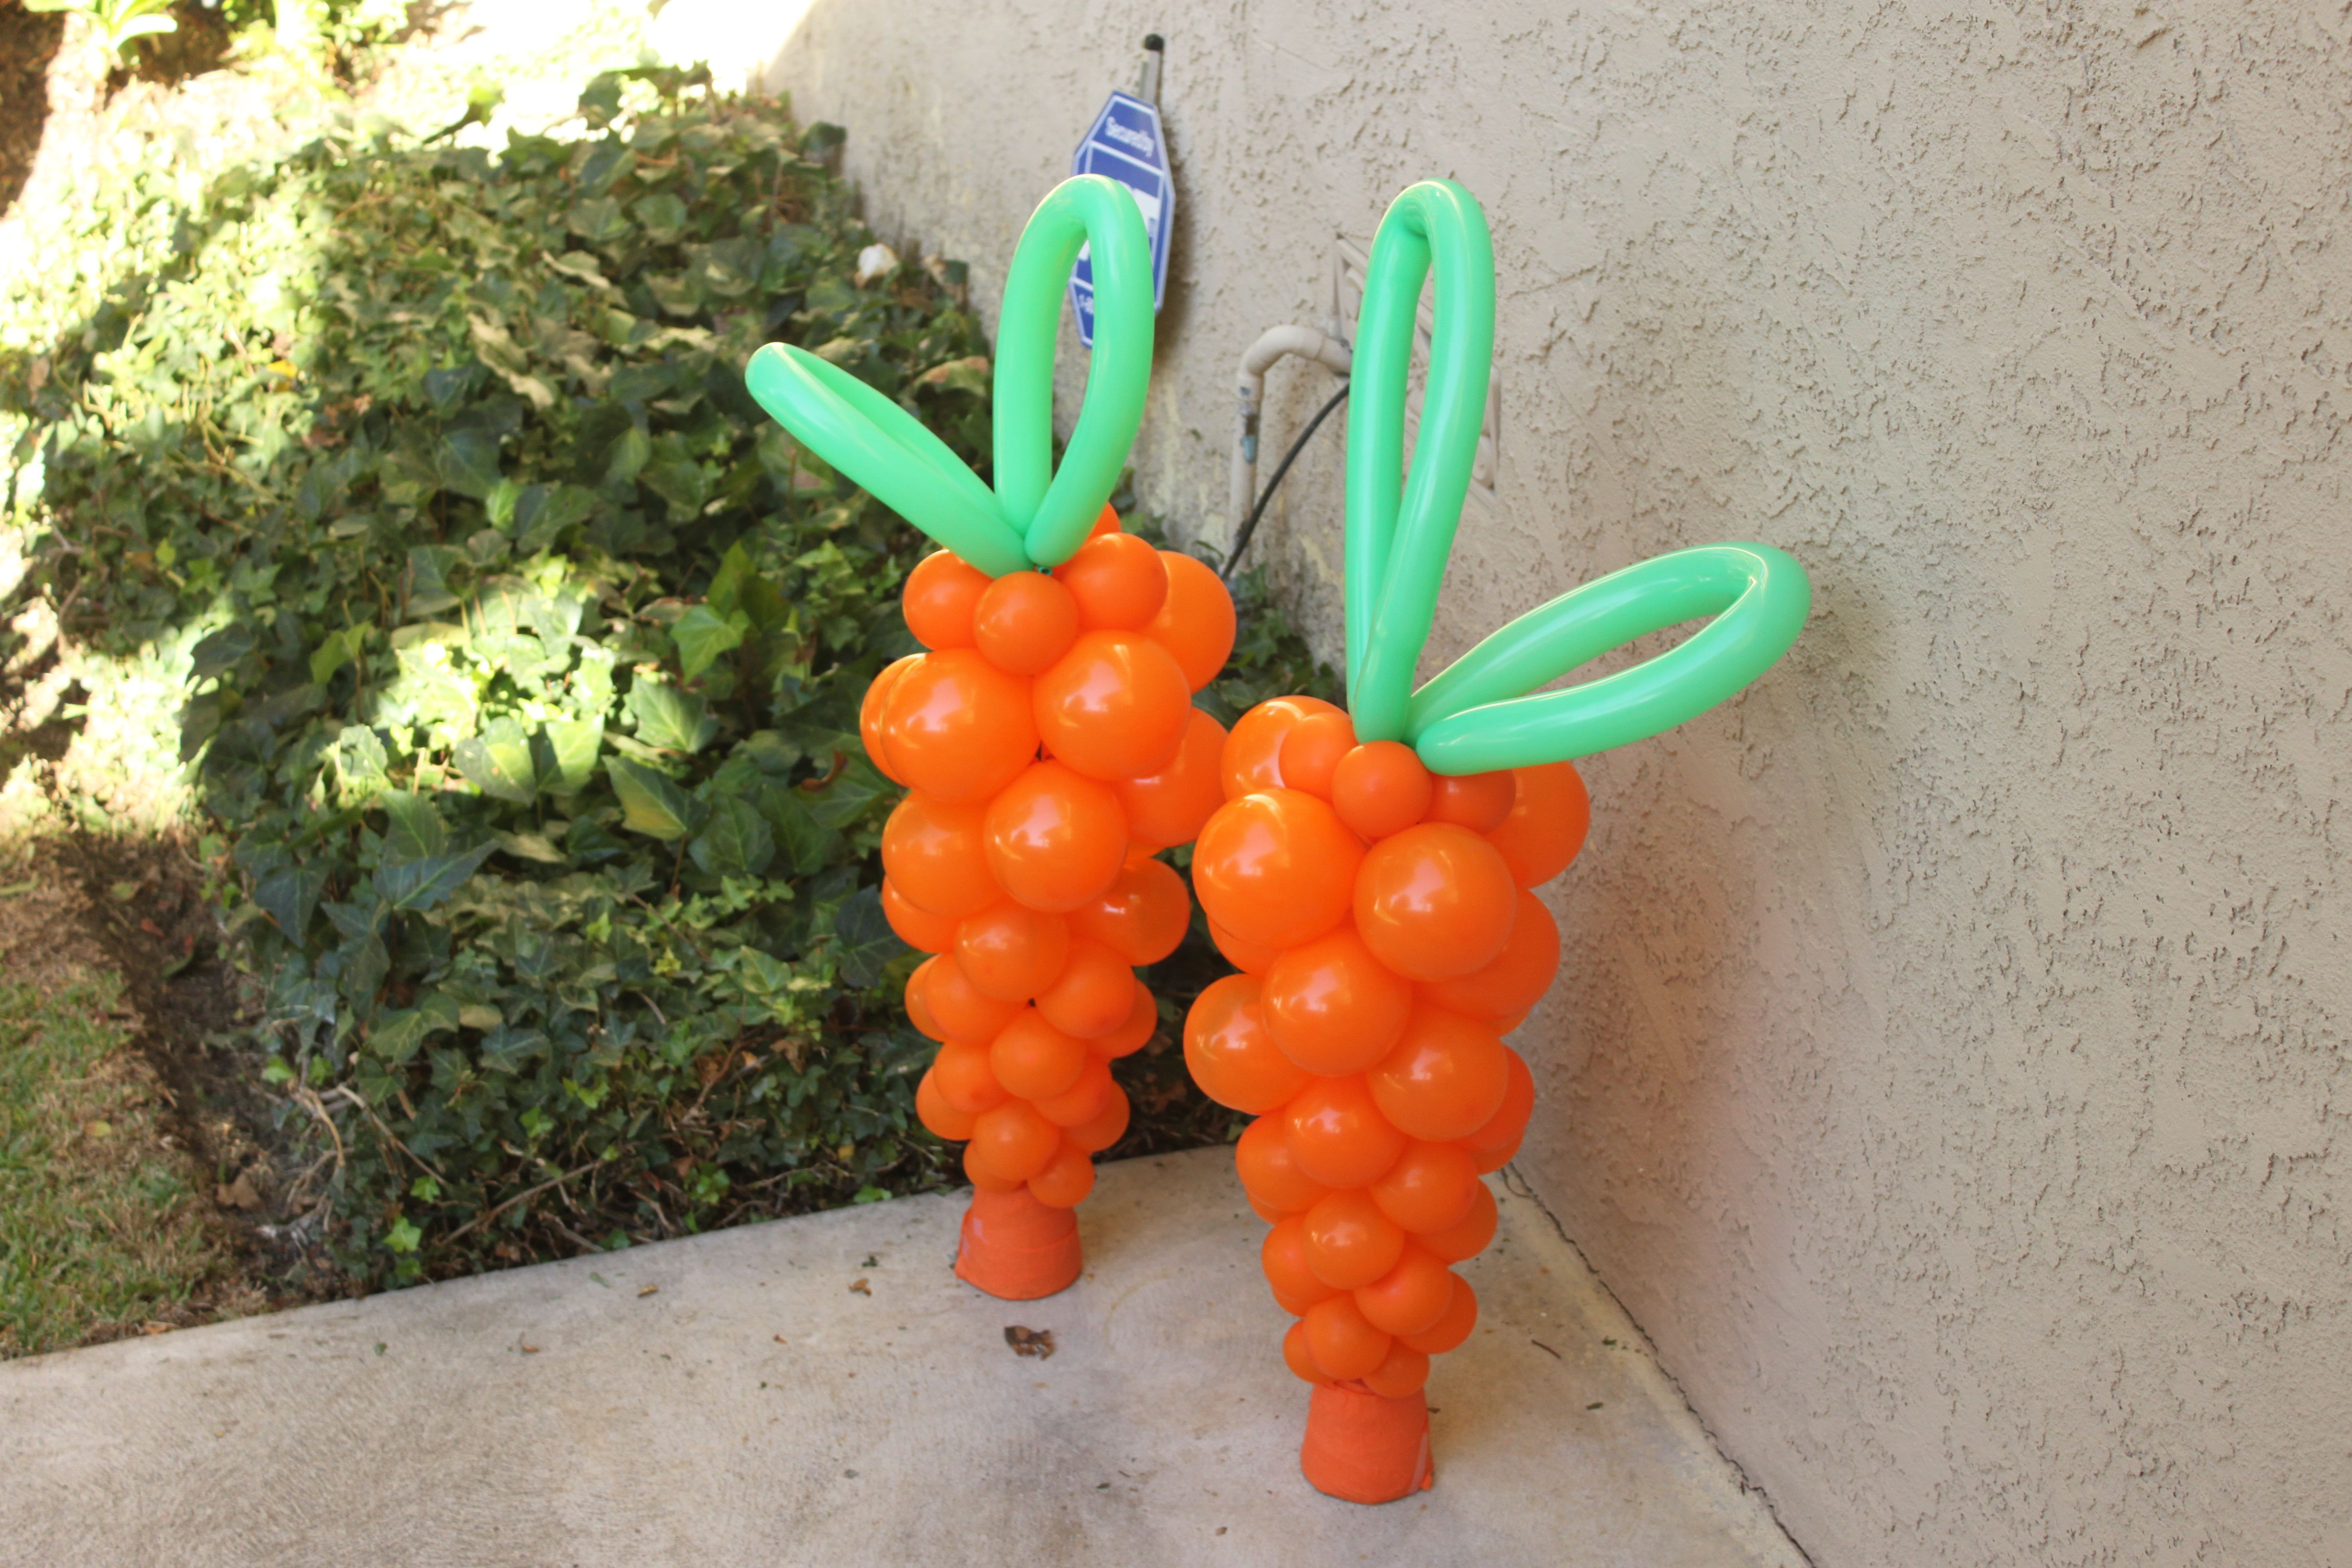 Harry The Bunny Party Balloon Carrots Amayton Ill Need Your Skills For These